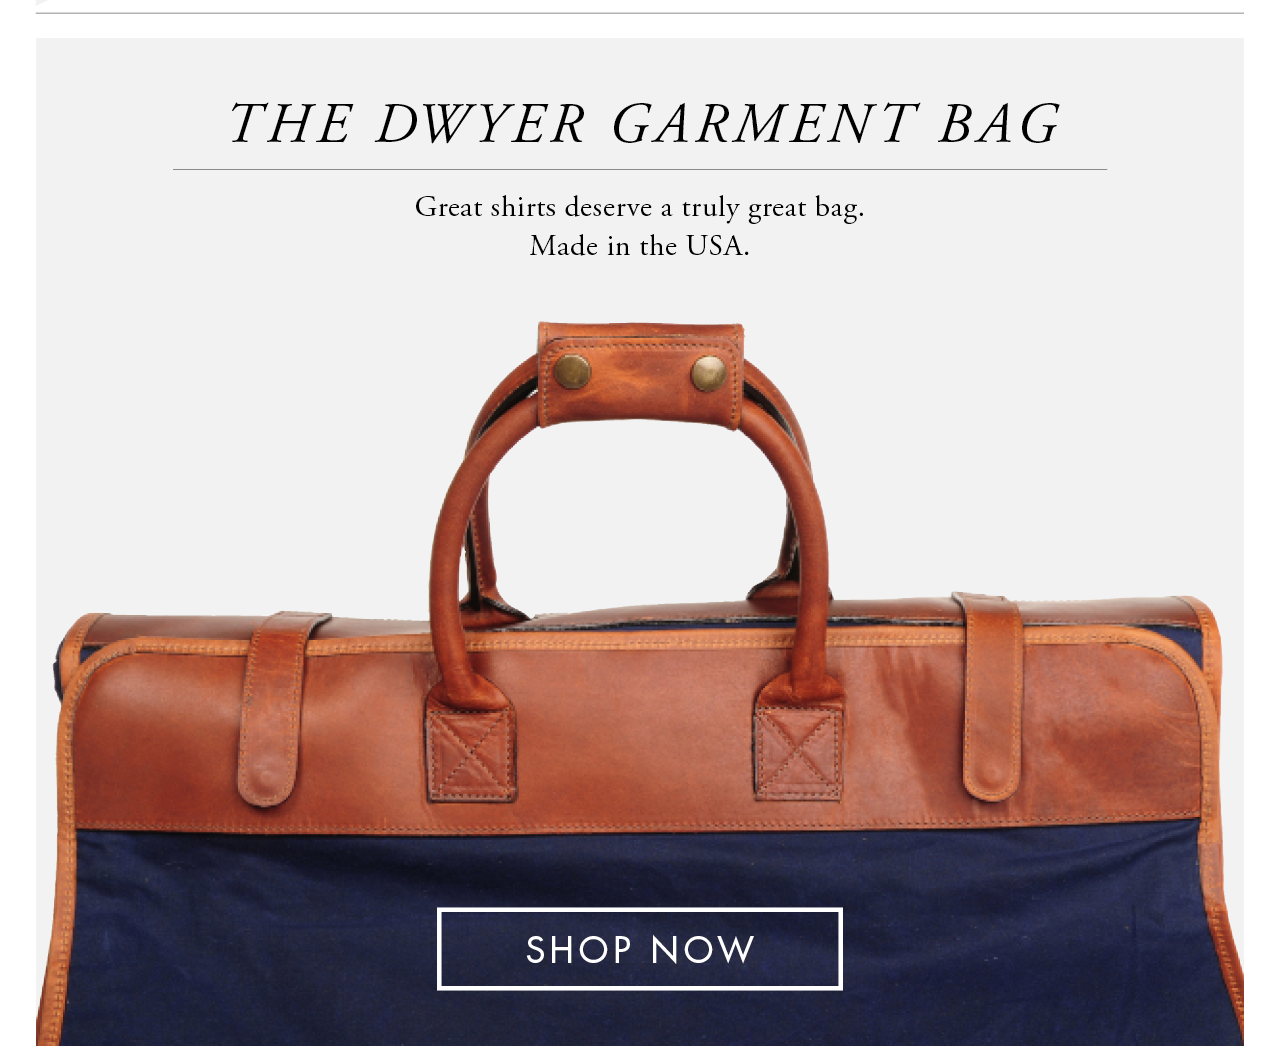 The Dwyer Garment Bag